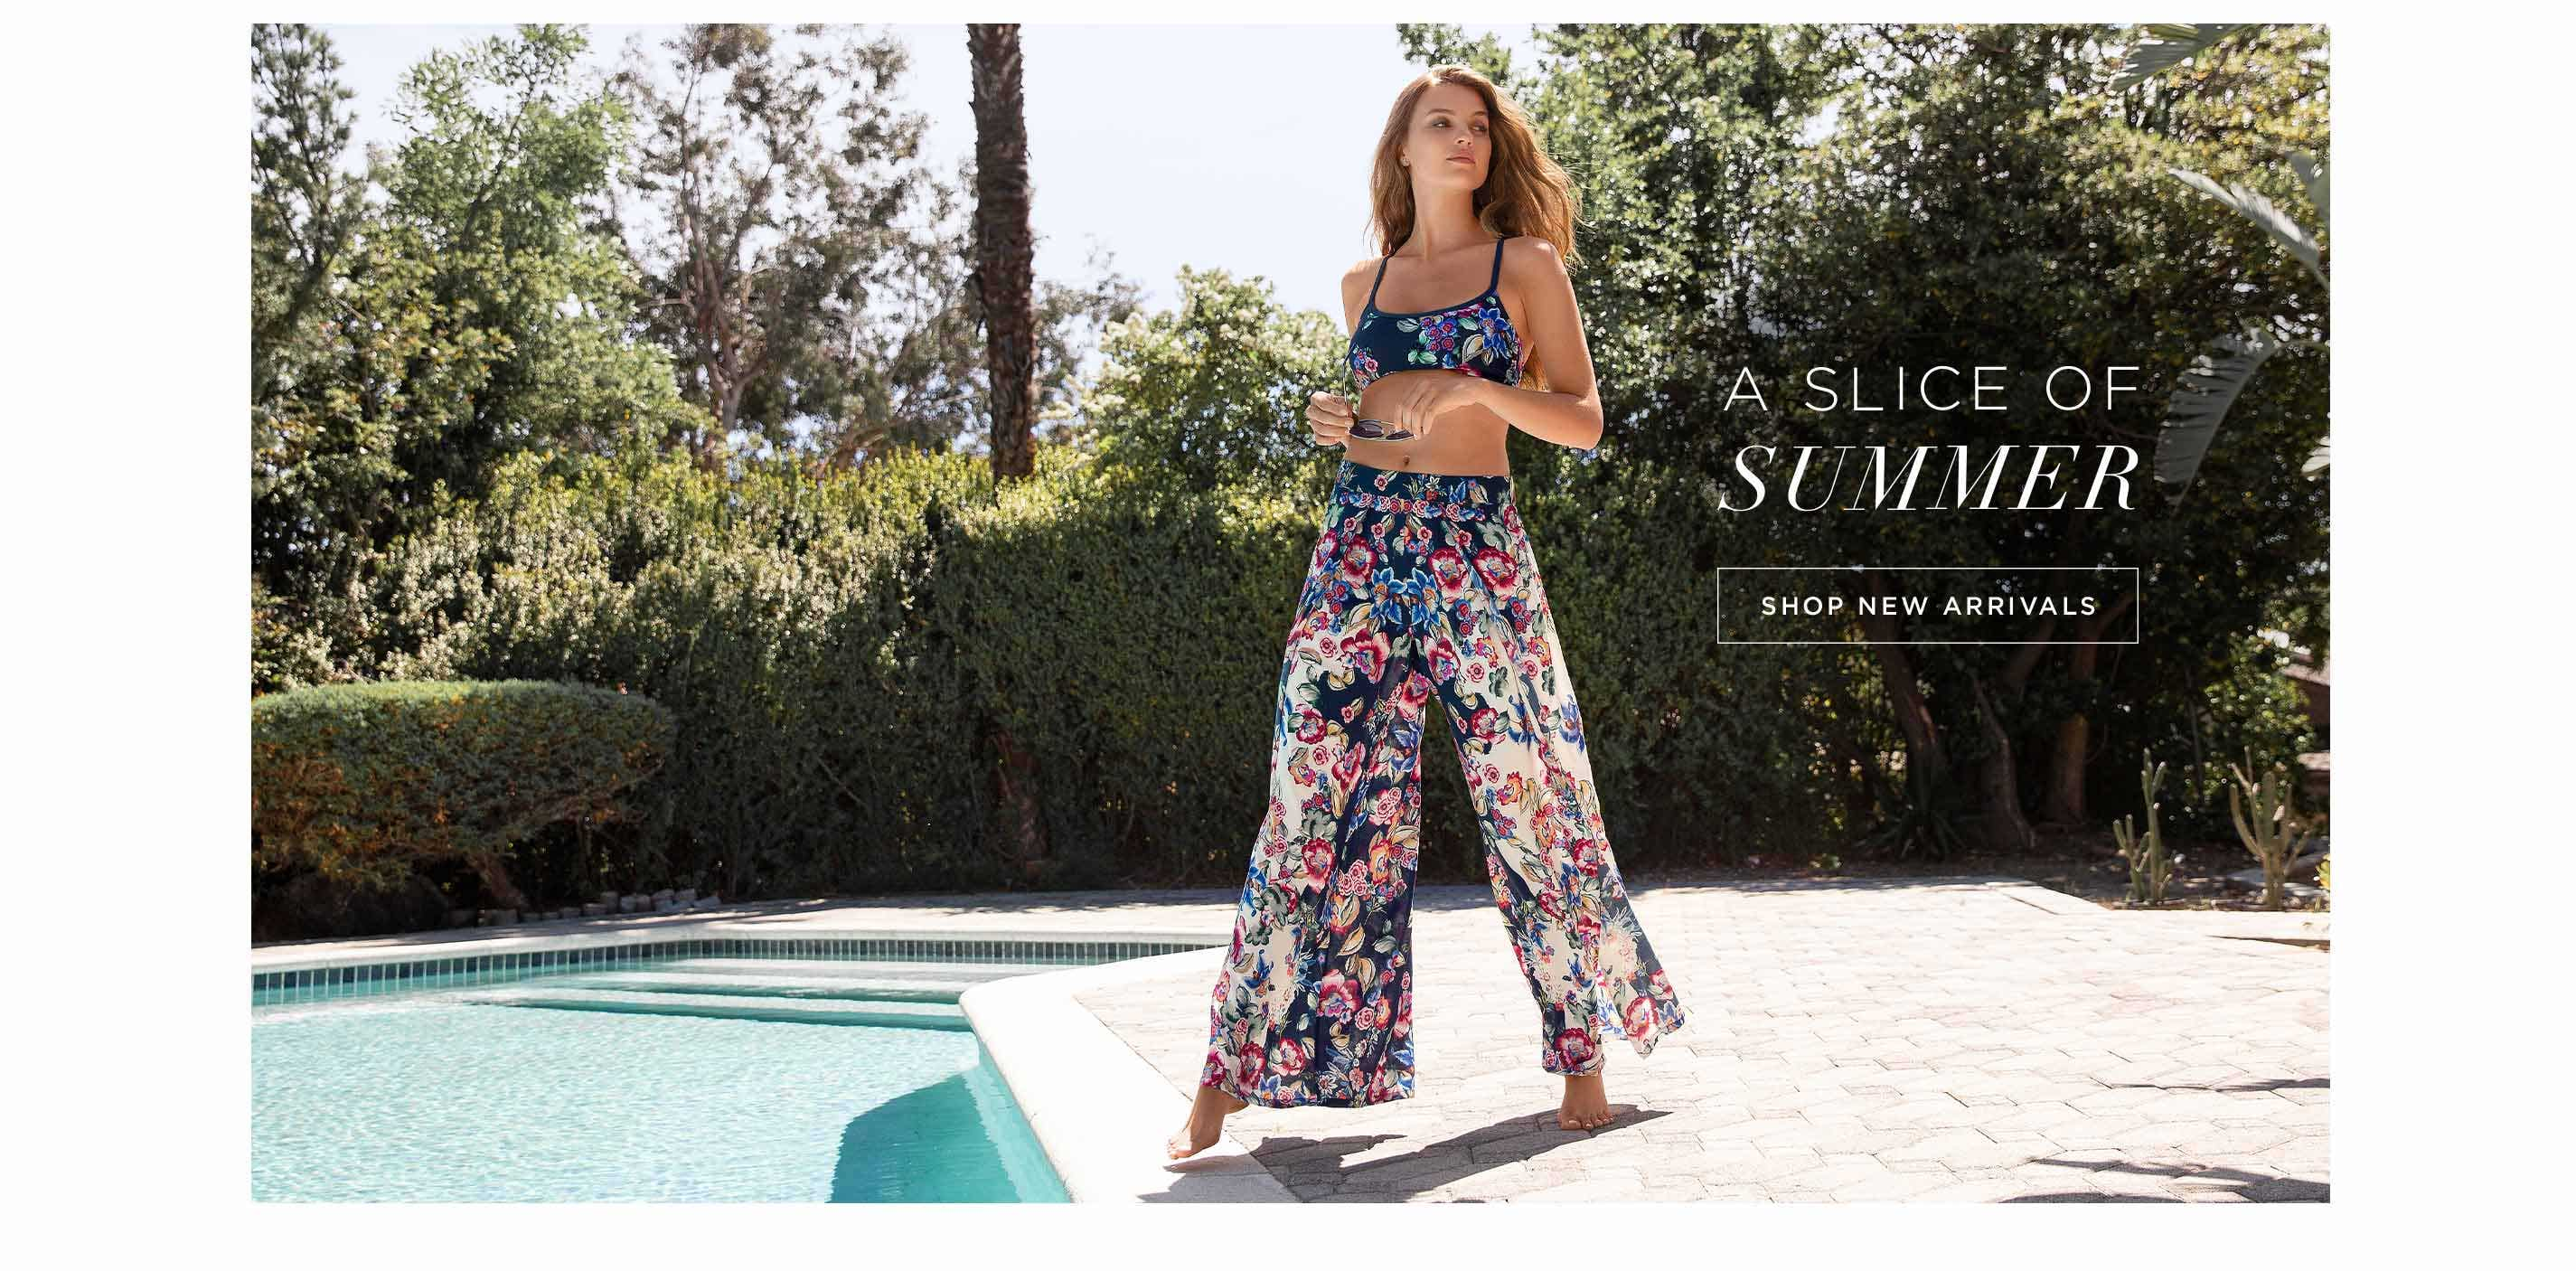 A Slice of Summer - Shop New Arrivals